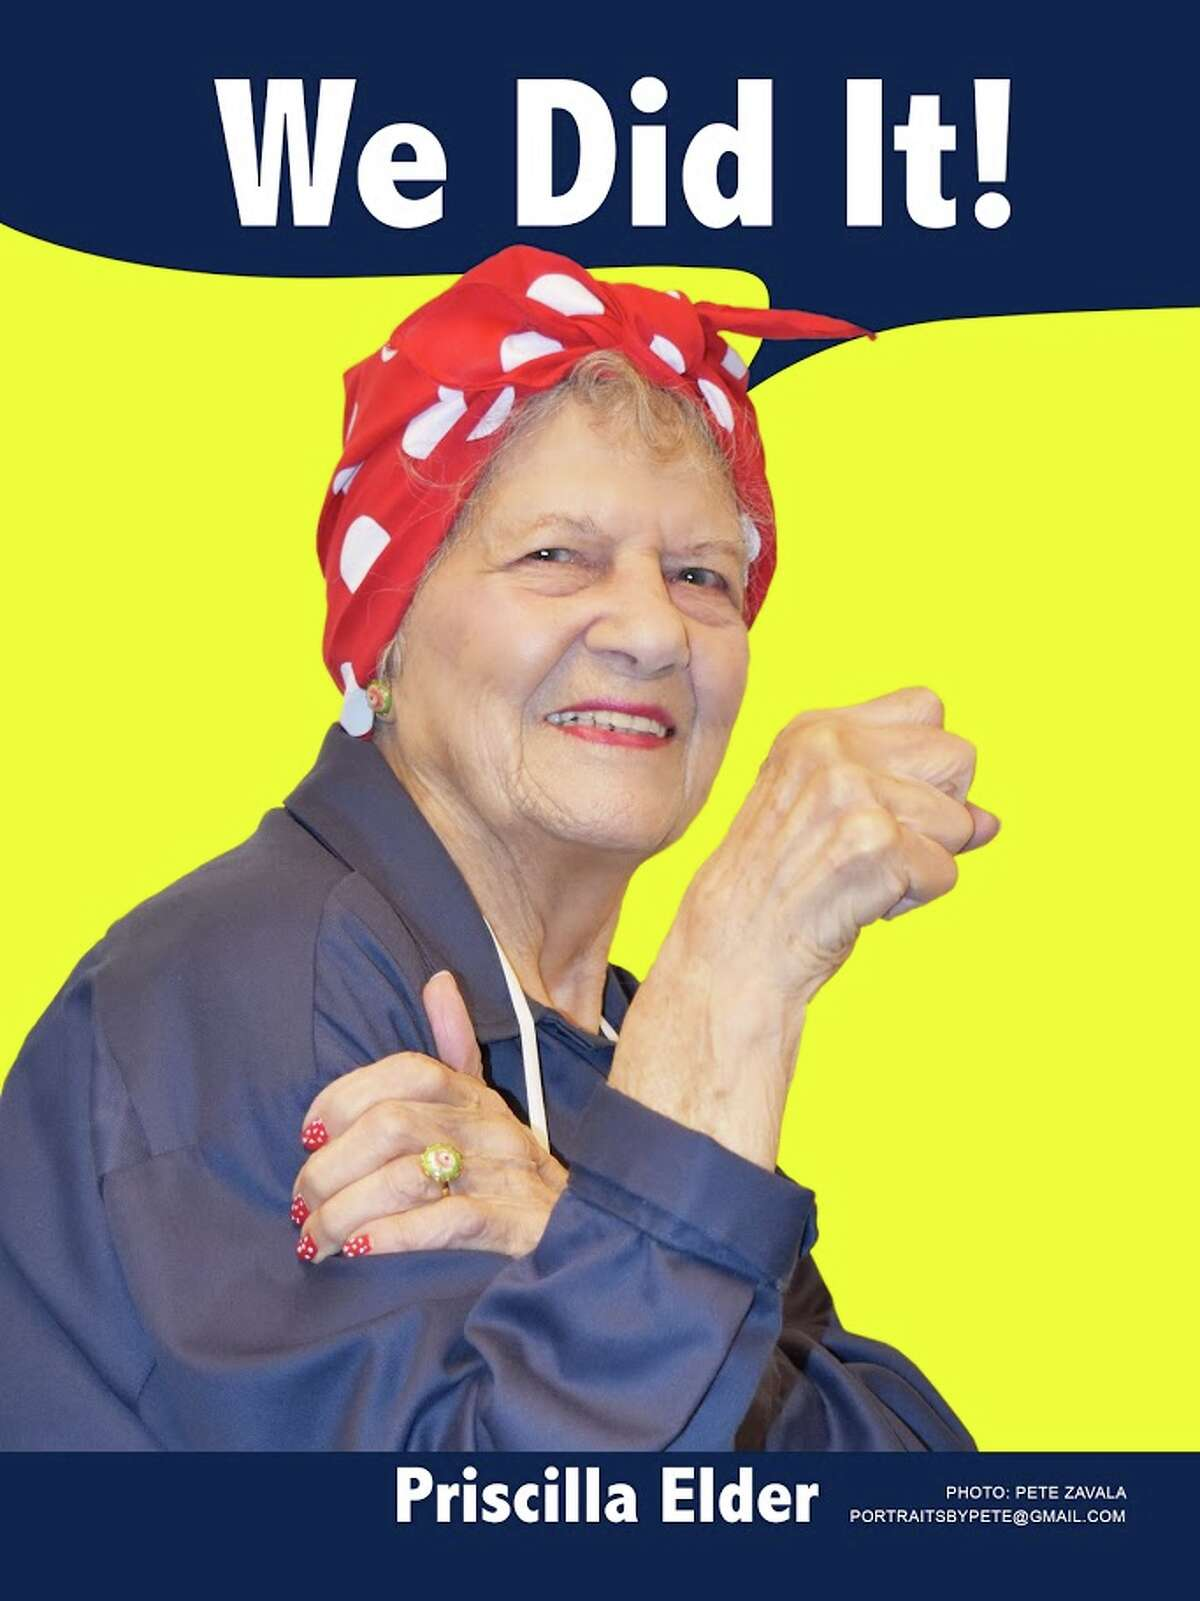 Priscilla Elder poses in the infamous style of the Rosie the Riveter posters in this photo released by the Rosie the Riveter WWII Home Front National Historical Park. Elder worked in the Kaiser shipyard and later returned to the newly-formed park as a volunteer.